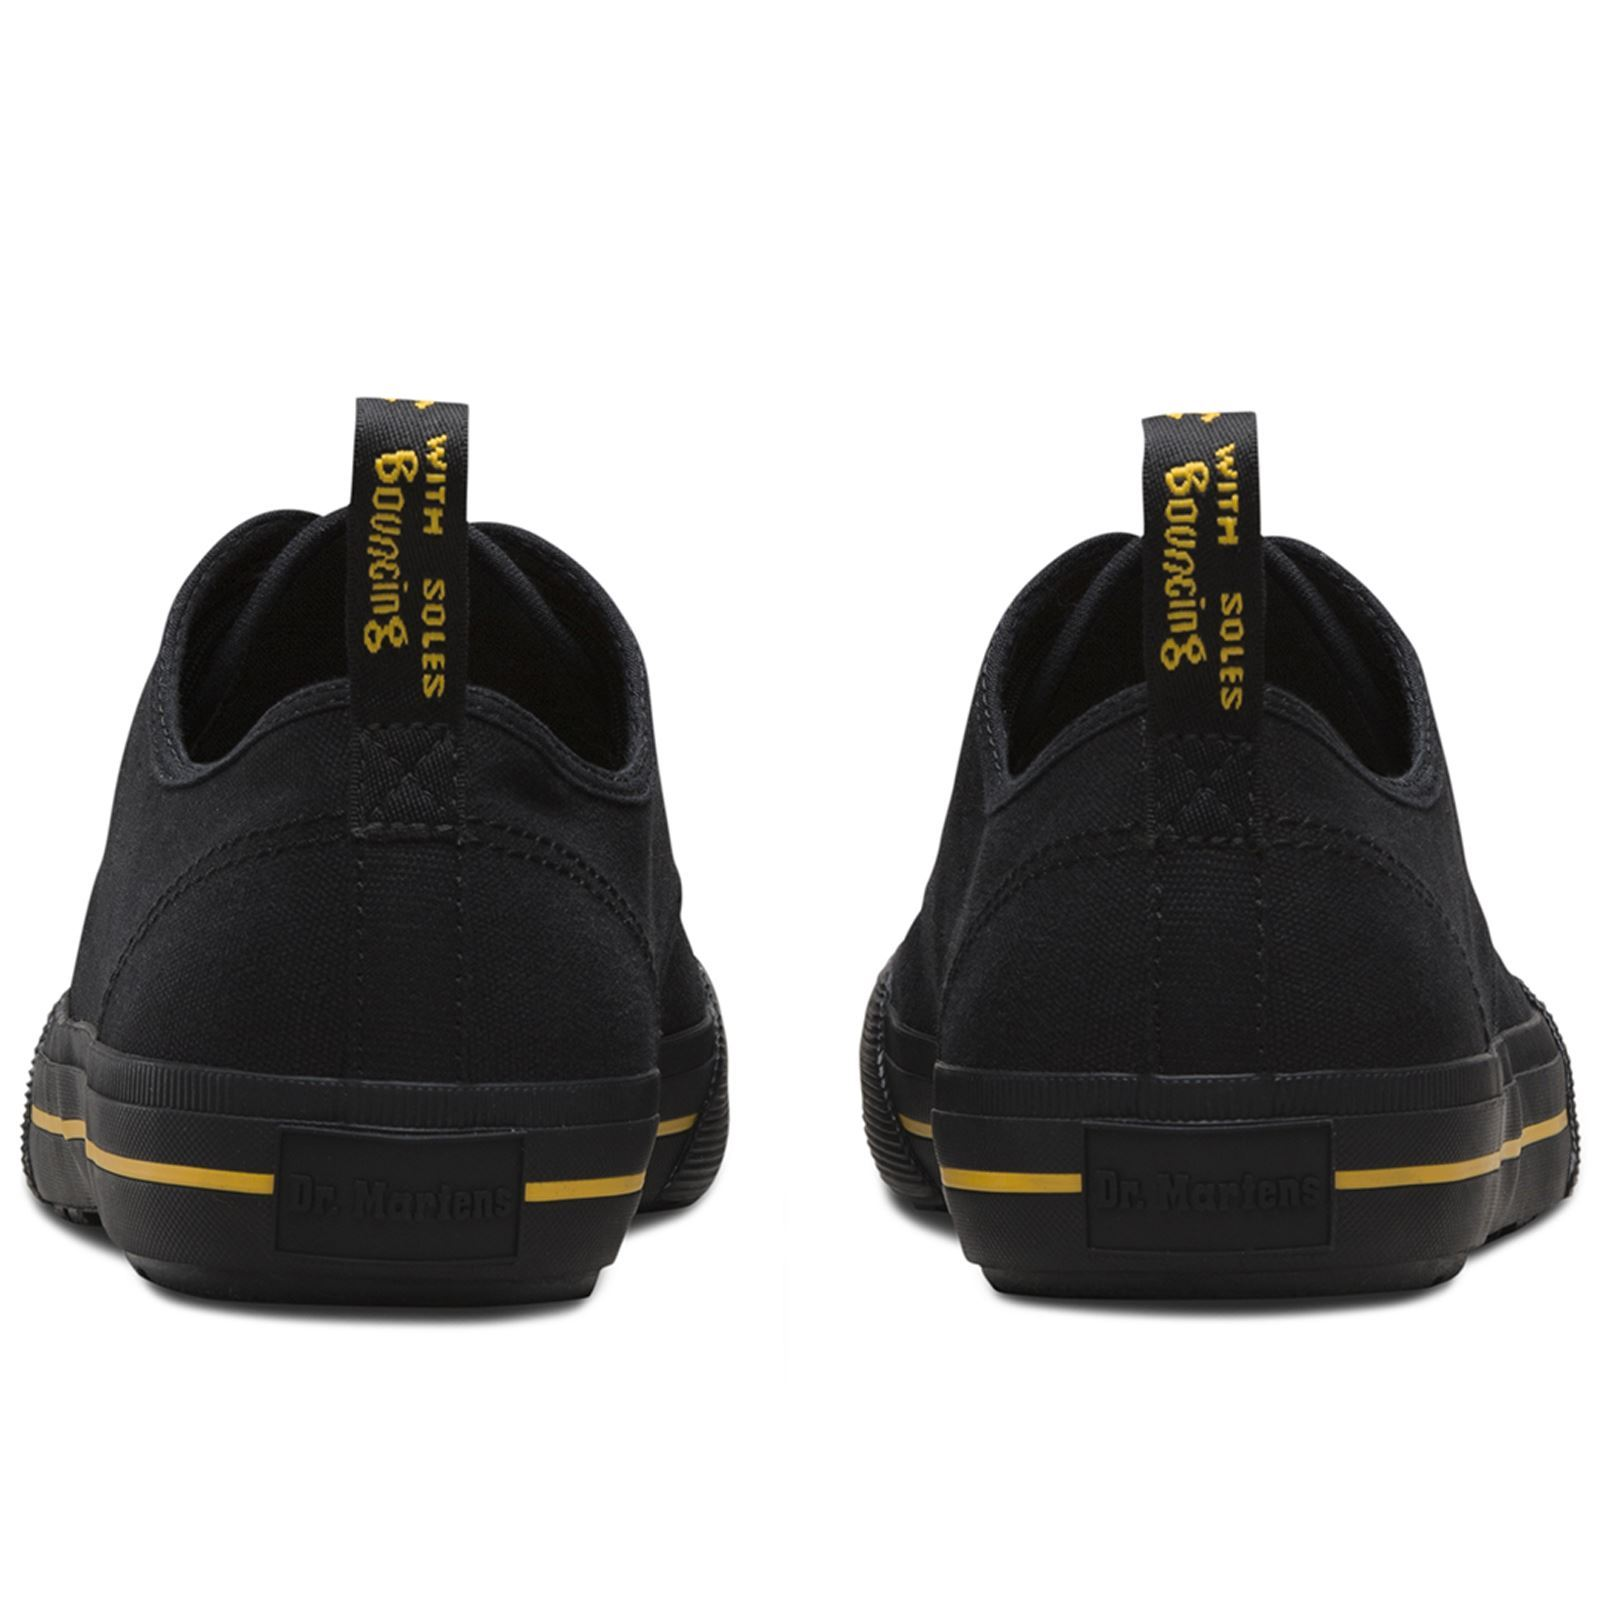 Dr.Martens Pressler 4-Eyelet Casual Black Unisex Canvas Casual 4-Eyelet Low-top Trainers ceca18